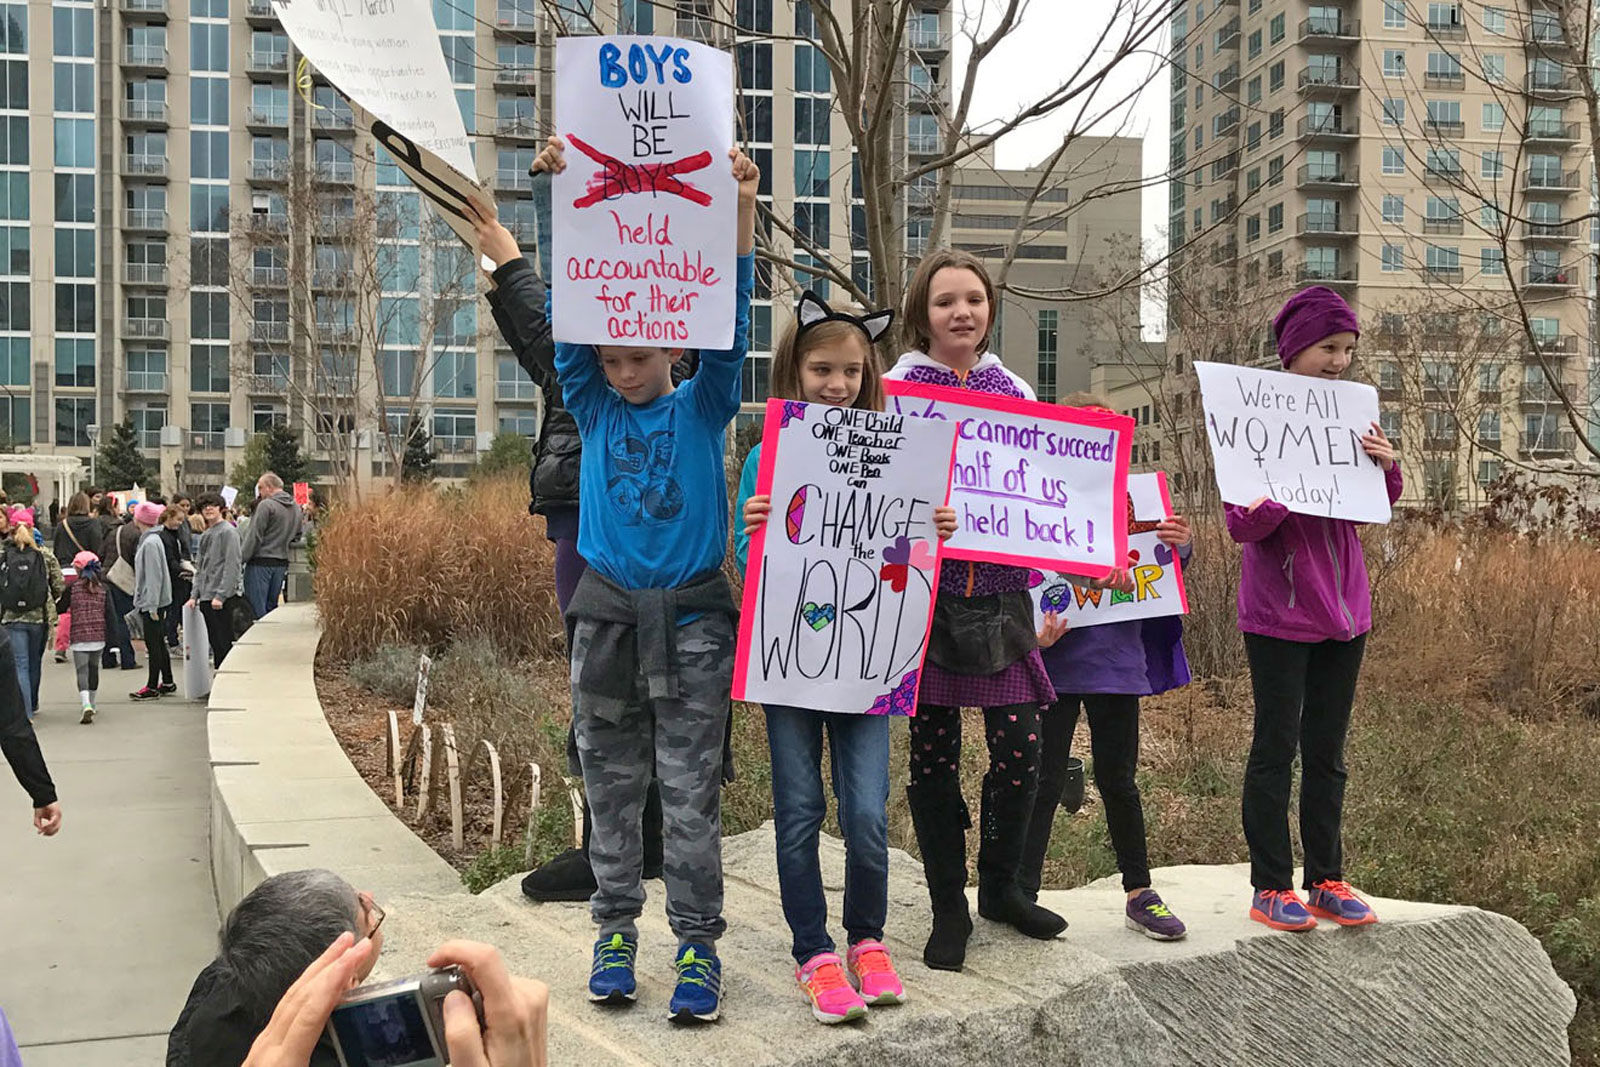 Charlotte's women's march was a family affair